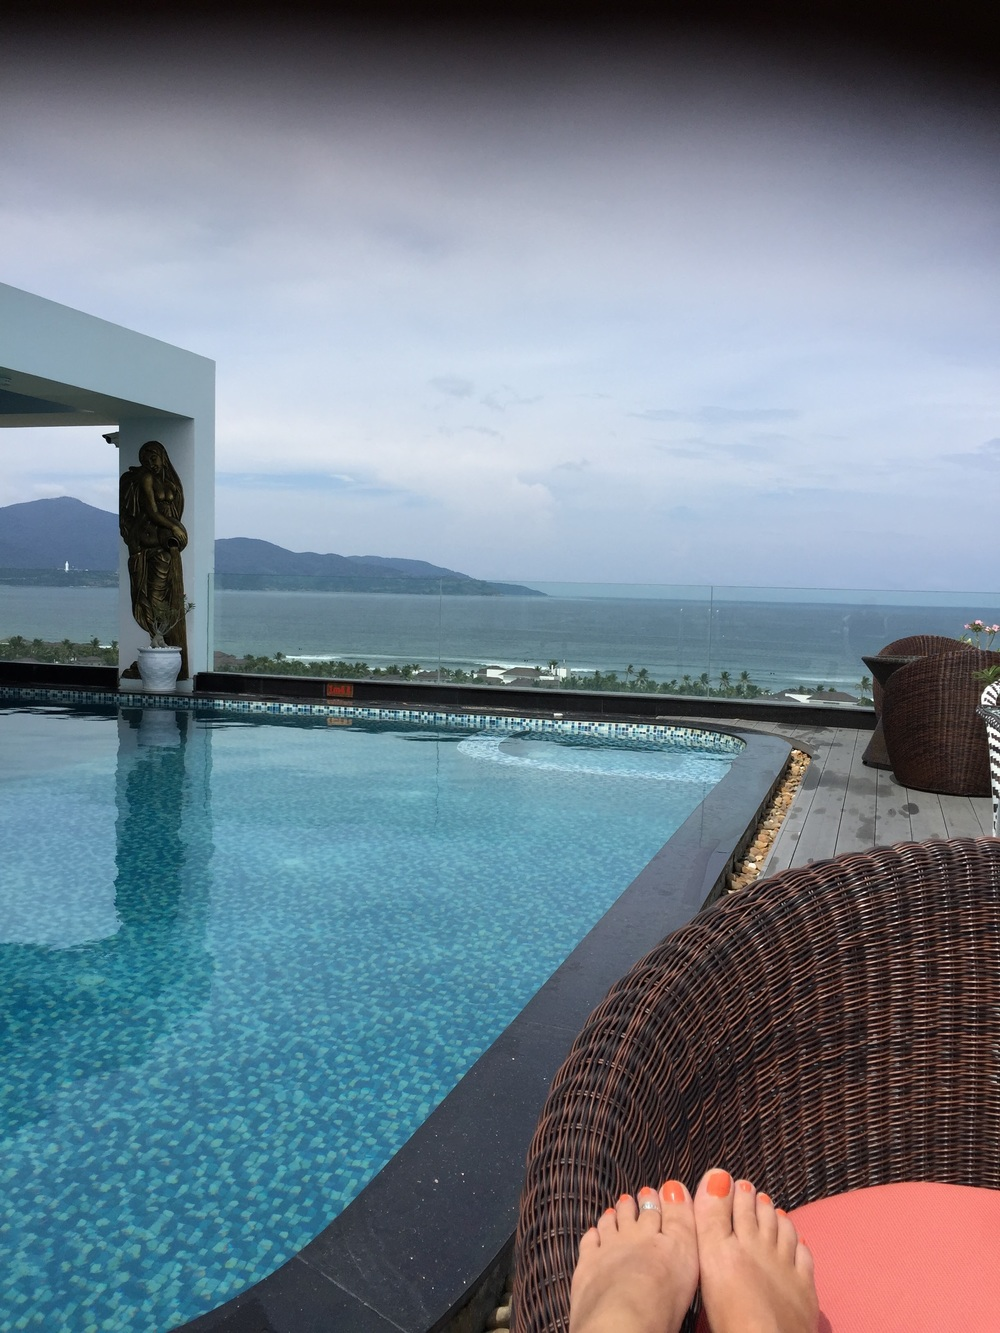 The rooftop pool at the Sea Phoenix in Da Nang.